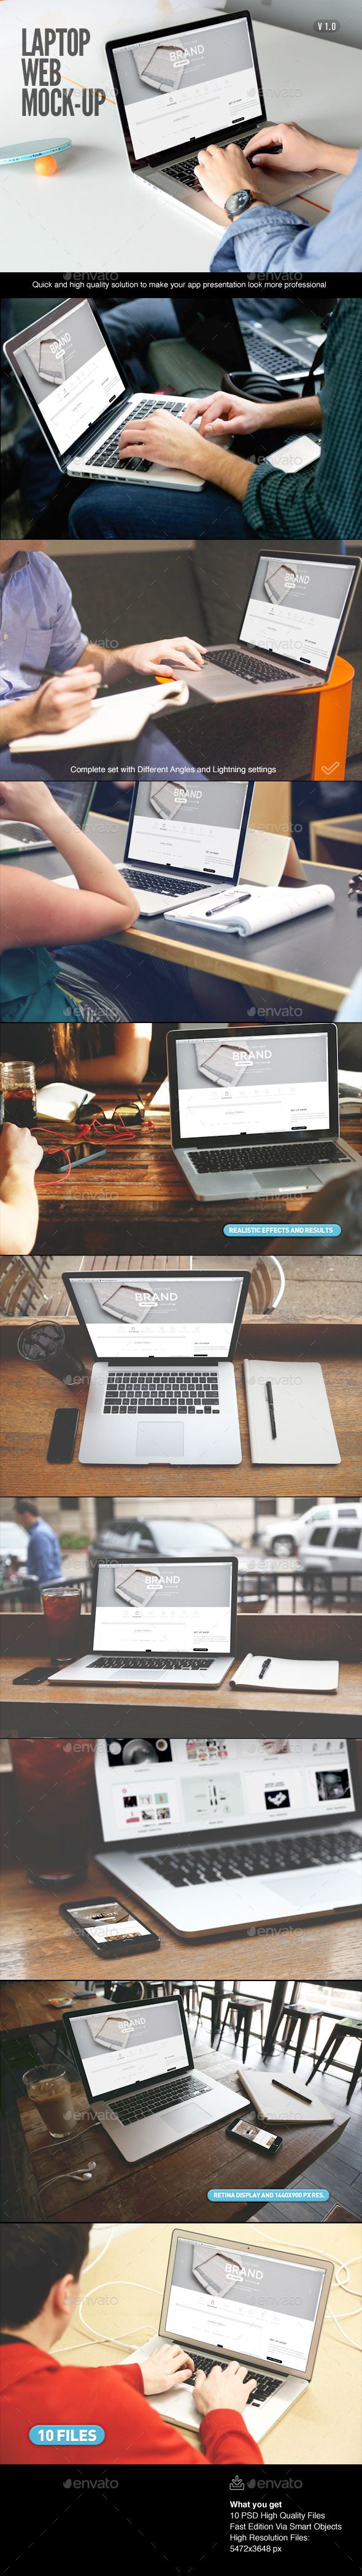 Laptop | Web App Mock-Up  #responsive #responsive screen #retina display #screens #showcase mockup #$9